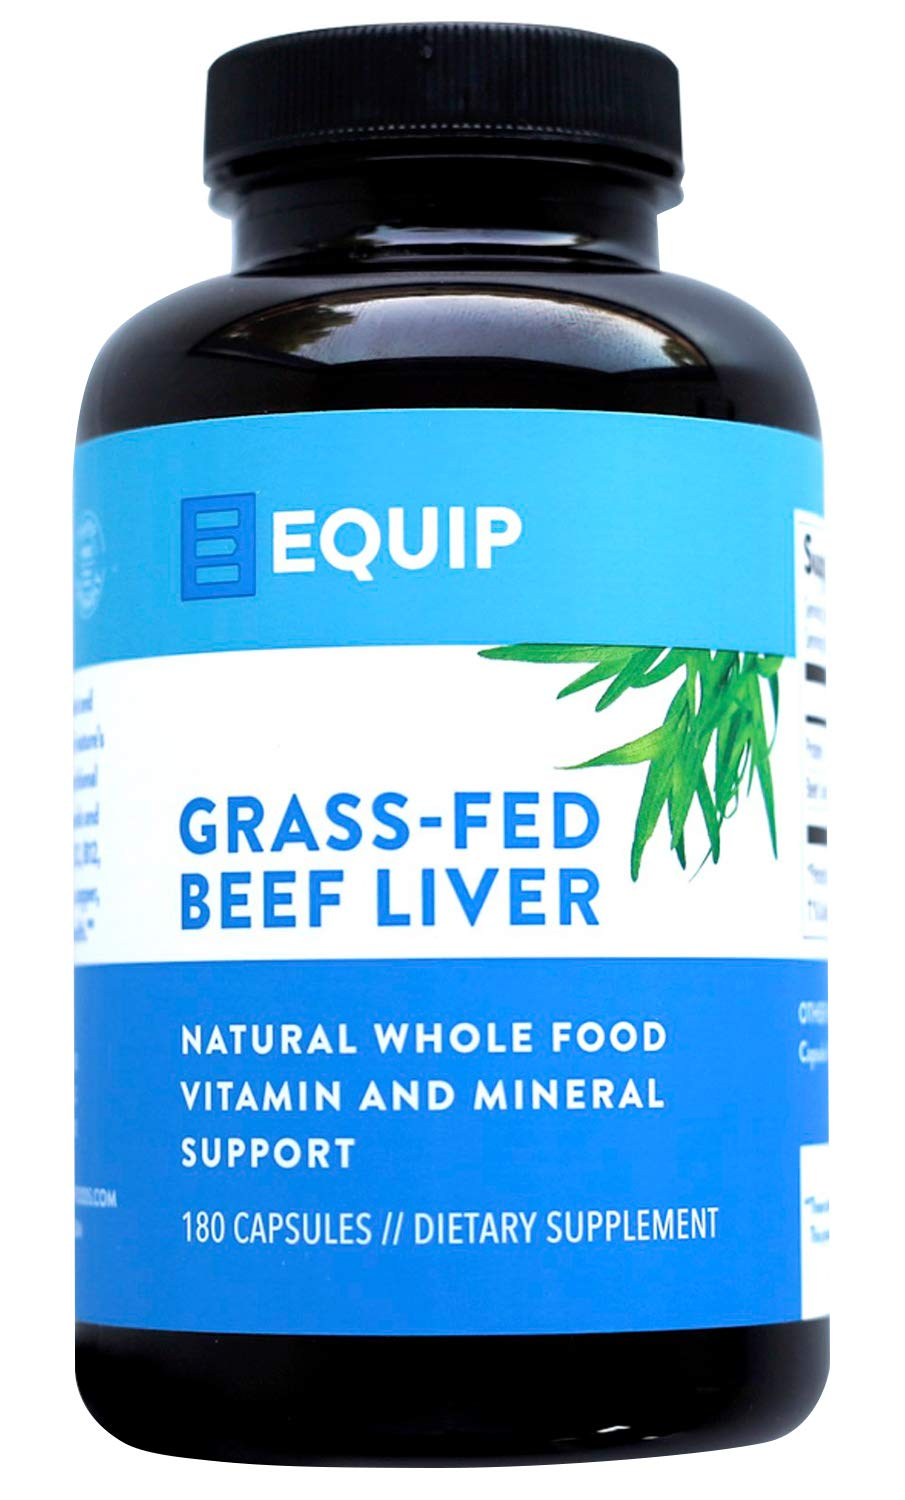 Beef Liver Capsules Iron Supplement: Vital Supplements from Ancestral Source Best as Natural Grass Fed Desiccated Liver Pills. Supports Healthy Blood Builder w Grassfed Organ Meat Heme Iron Folate B12 by Equip